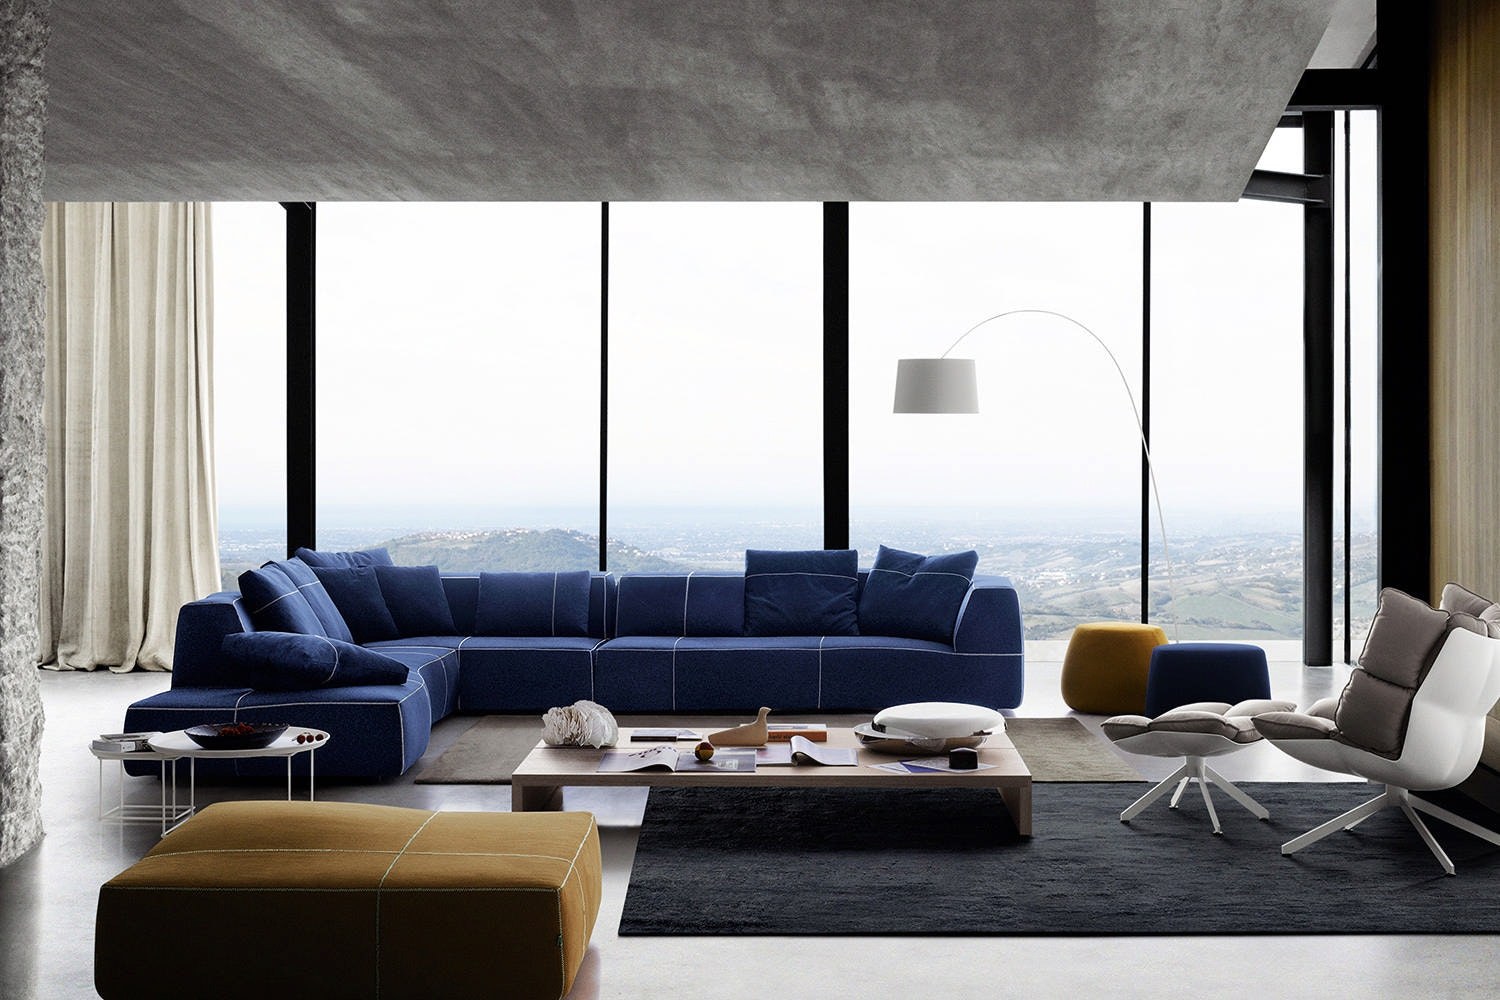 Bend-Sofa with Left Chaise by Patricia Urquiola for B&B Italia